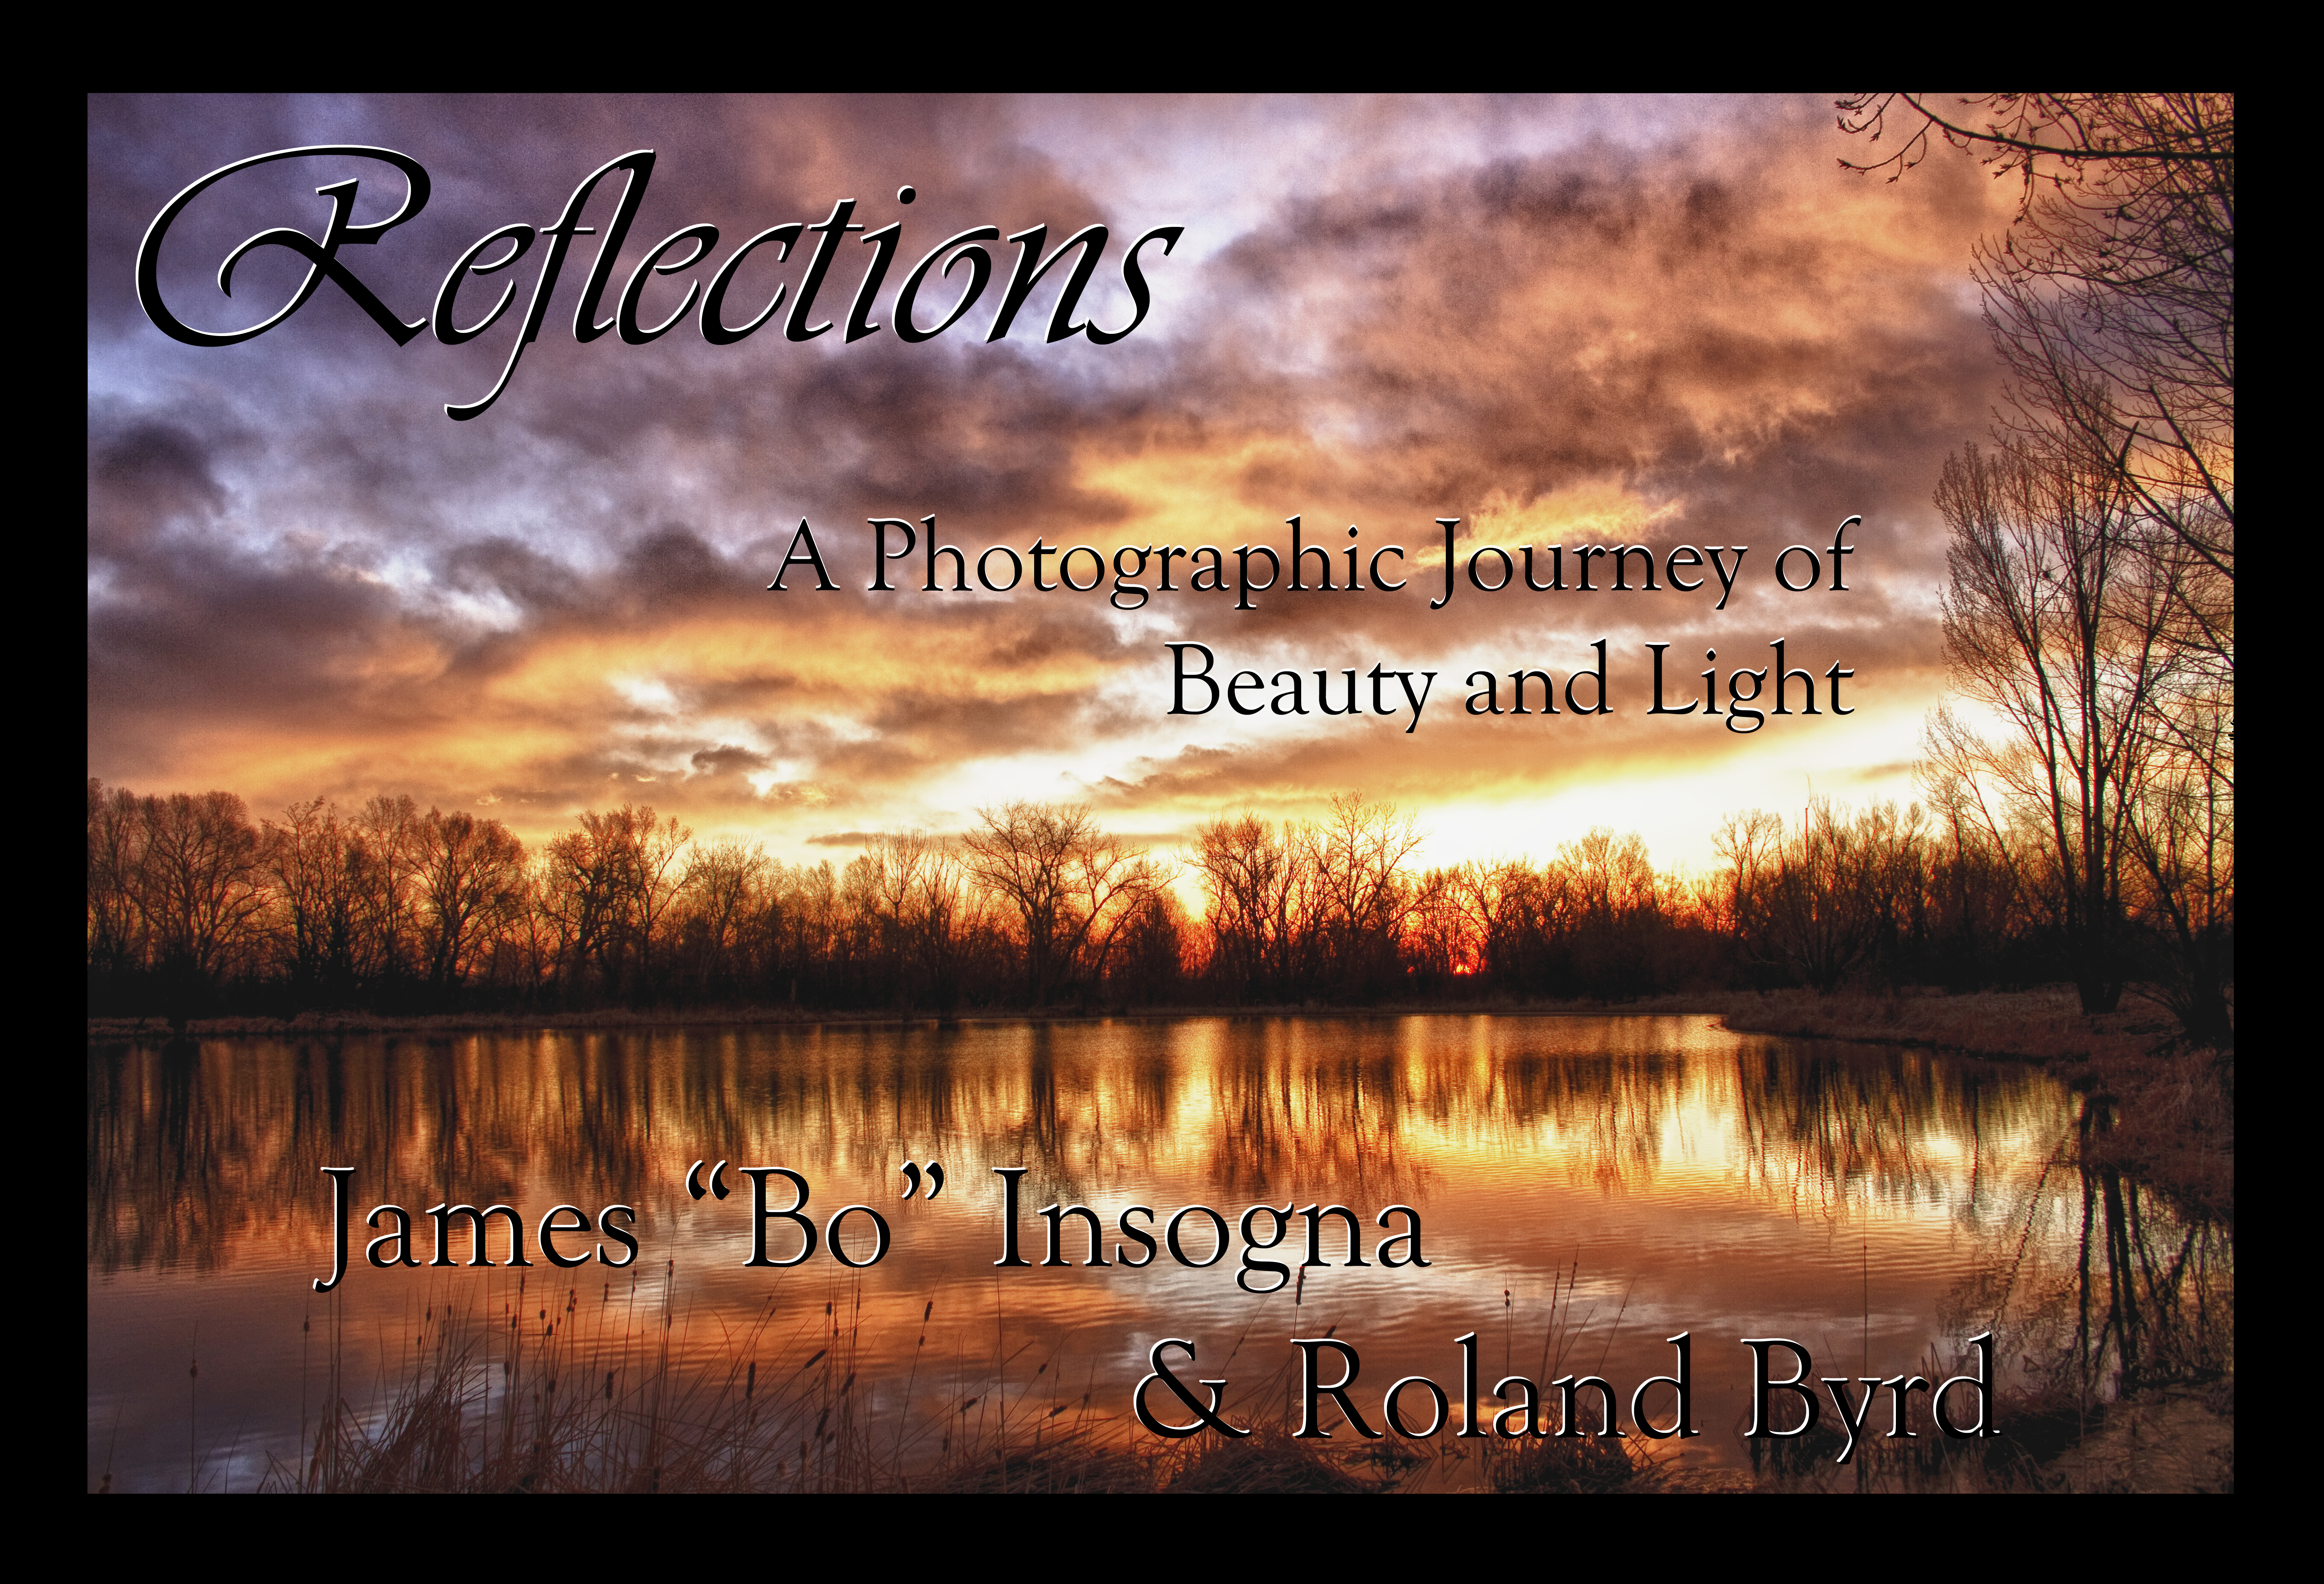 Reflections Book Cover Art